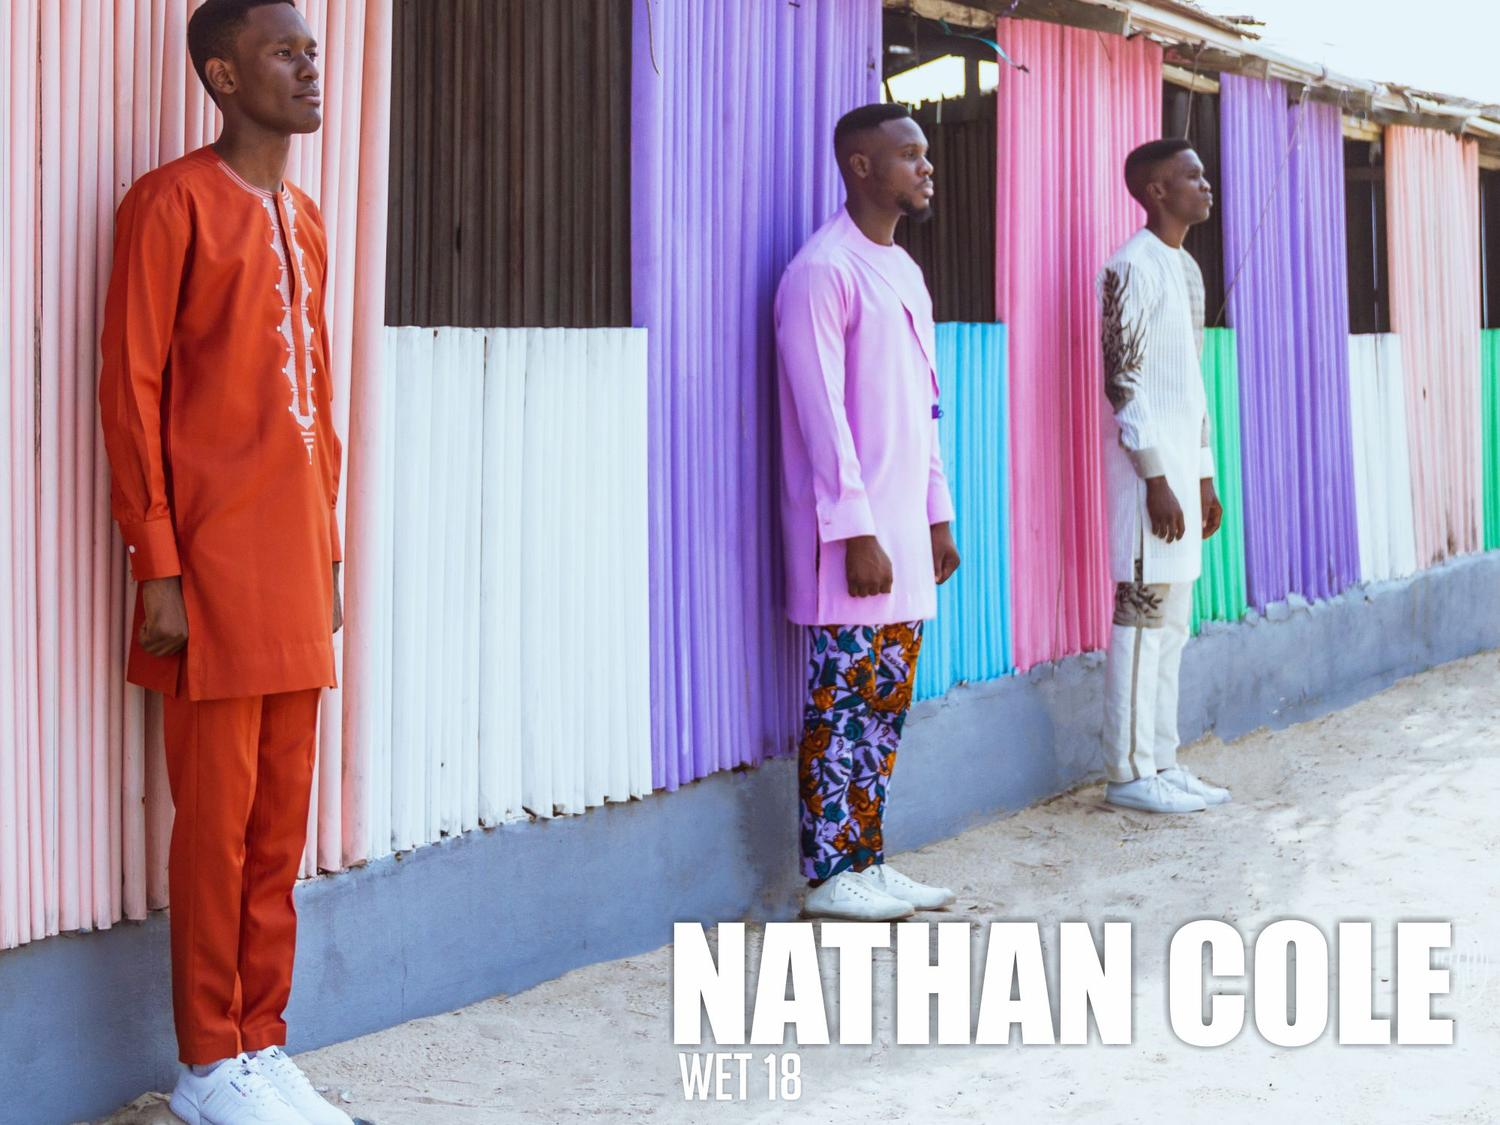 Nathan Cole Just Merged Traditional and Contemporary Fashion in a Genius Way